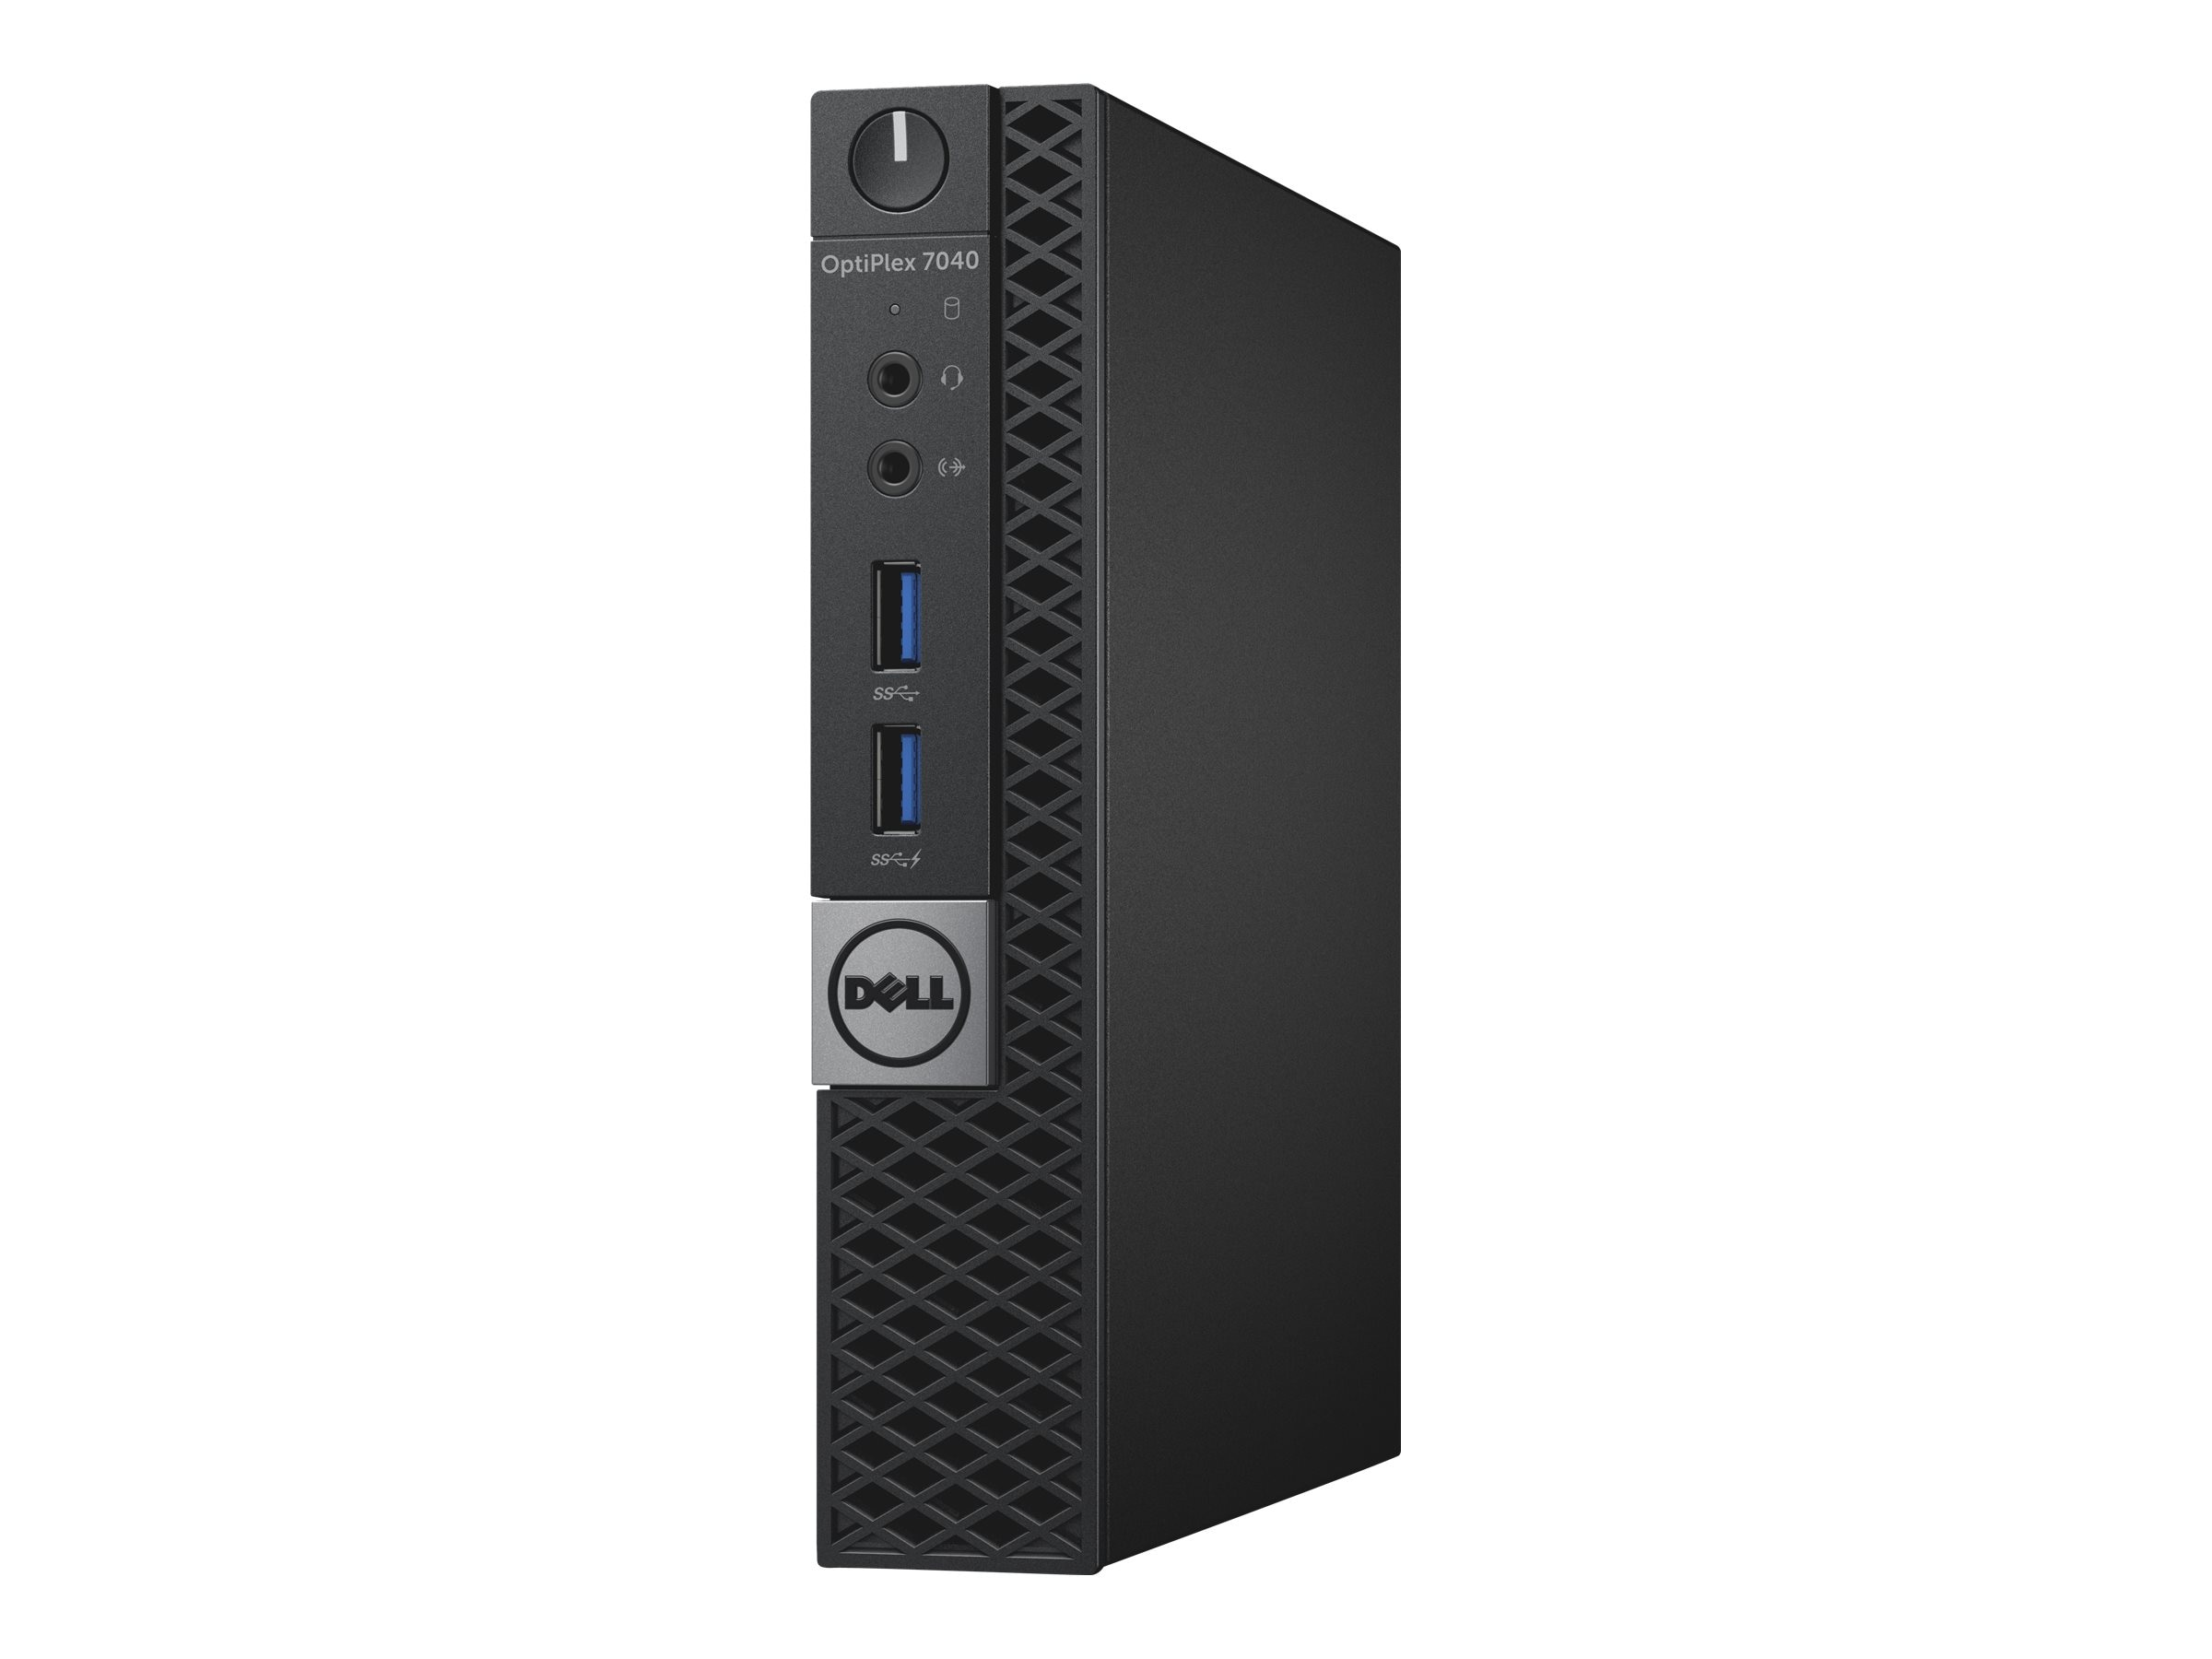 Dell OptiPlex 7040 2.5GHz Core i5 8GB RAM 500GB hard drive, MMWR6, 30819068, Desktops